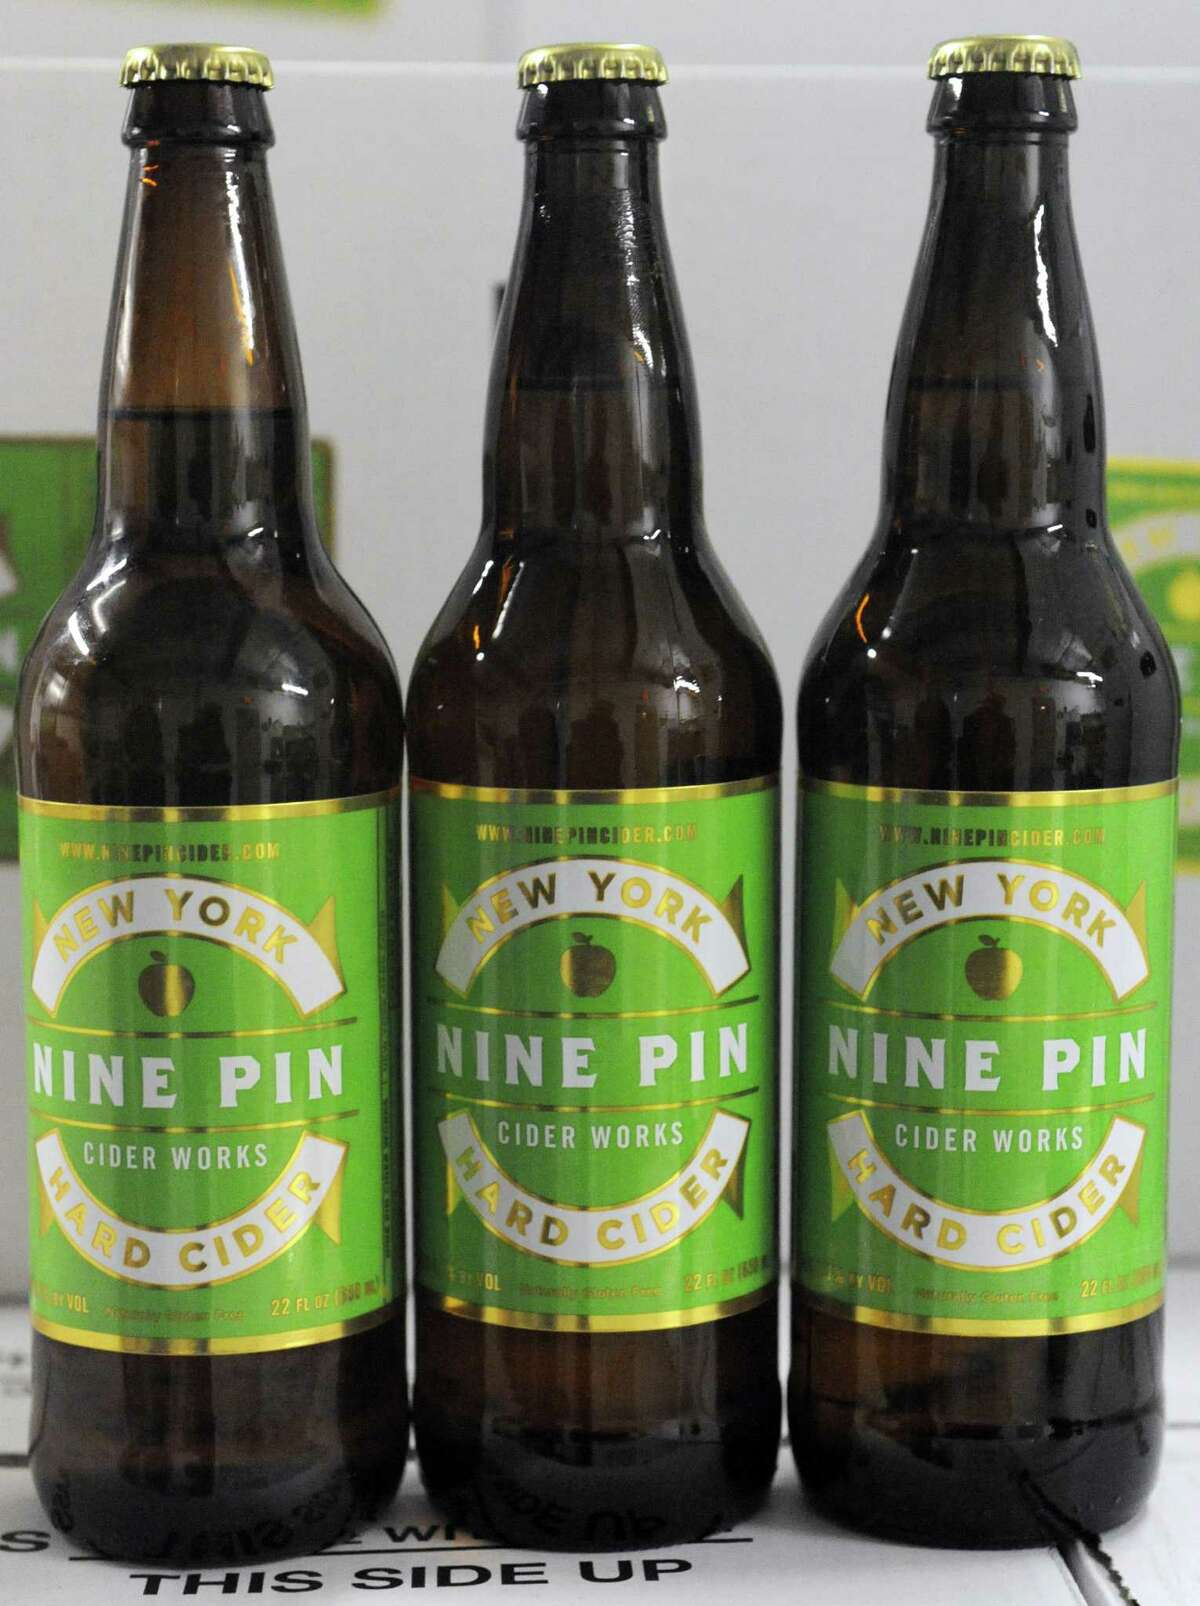 Bottles of Nine Pin Cider on Friday Feb. 14, 2014 in Albany, N.Y. (Michael P. Farrell/Times Union)